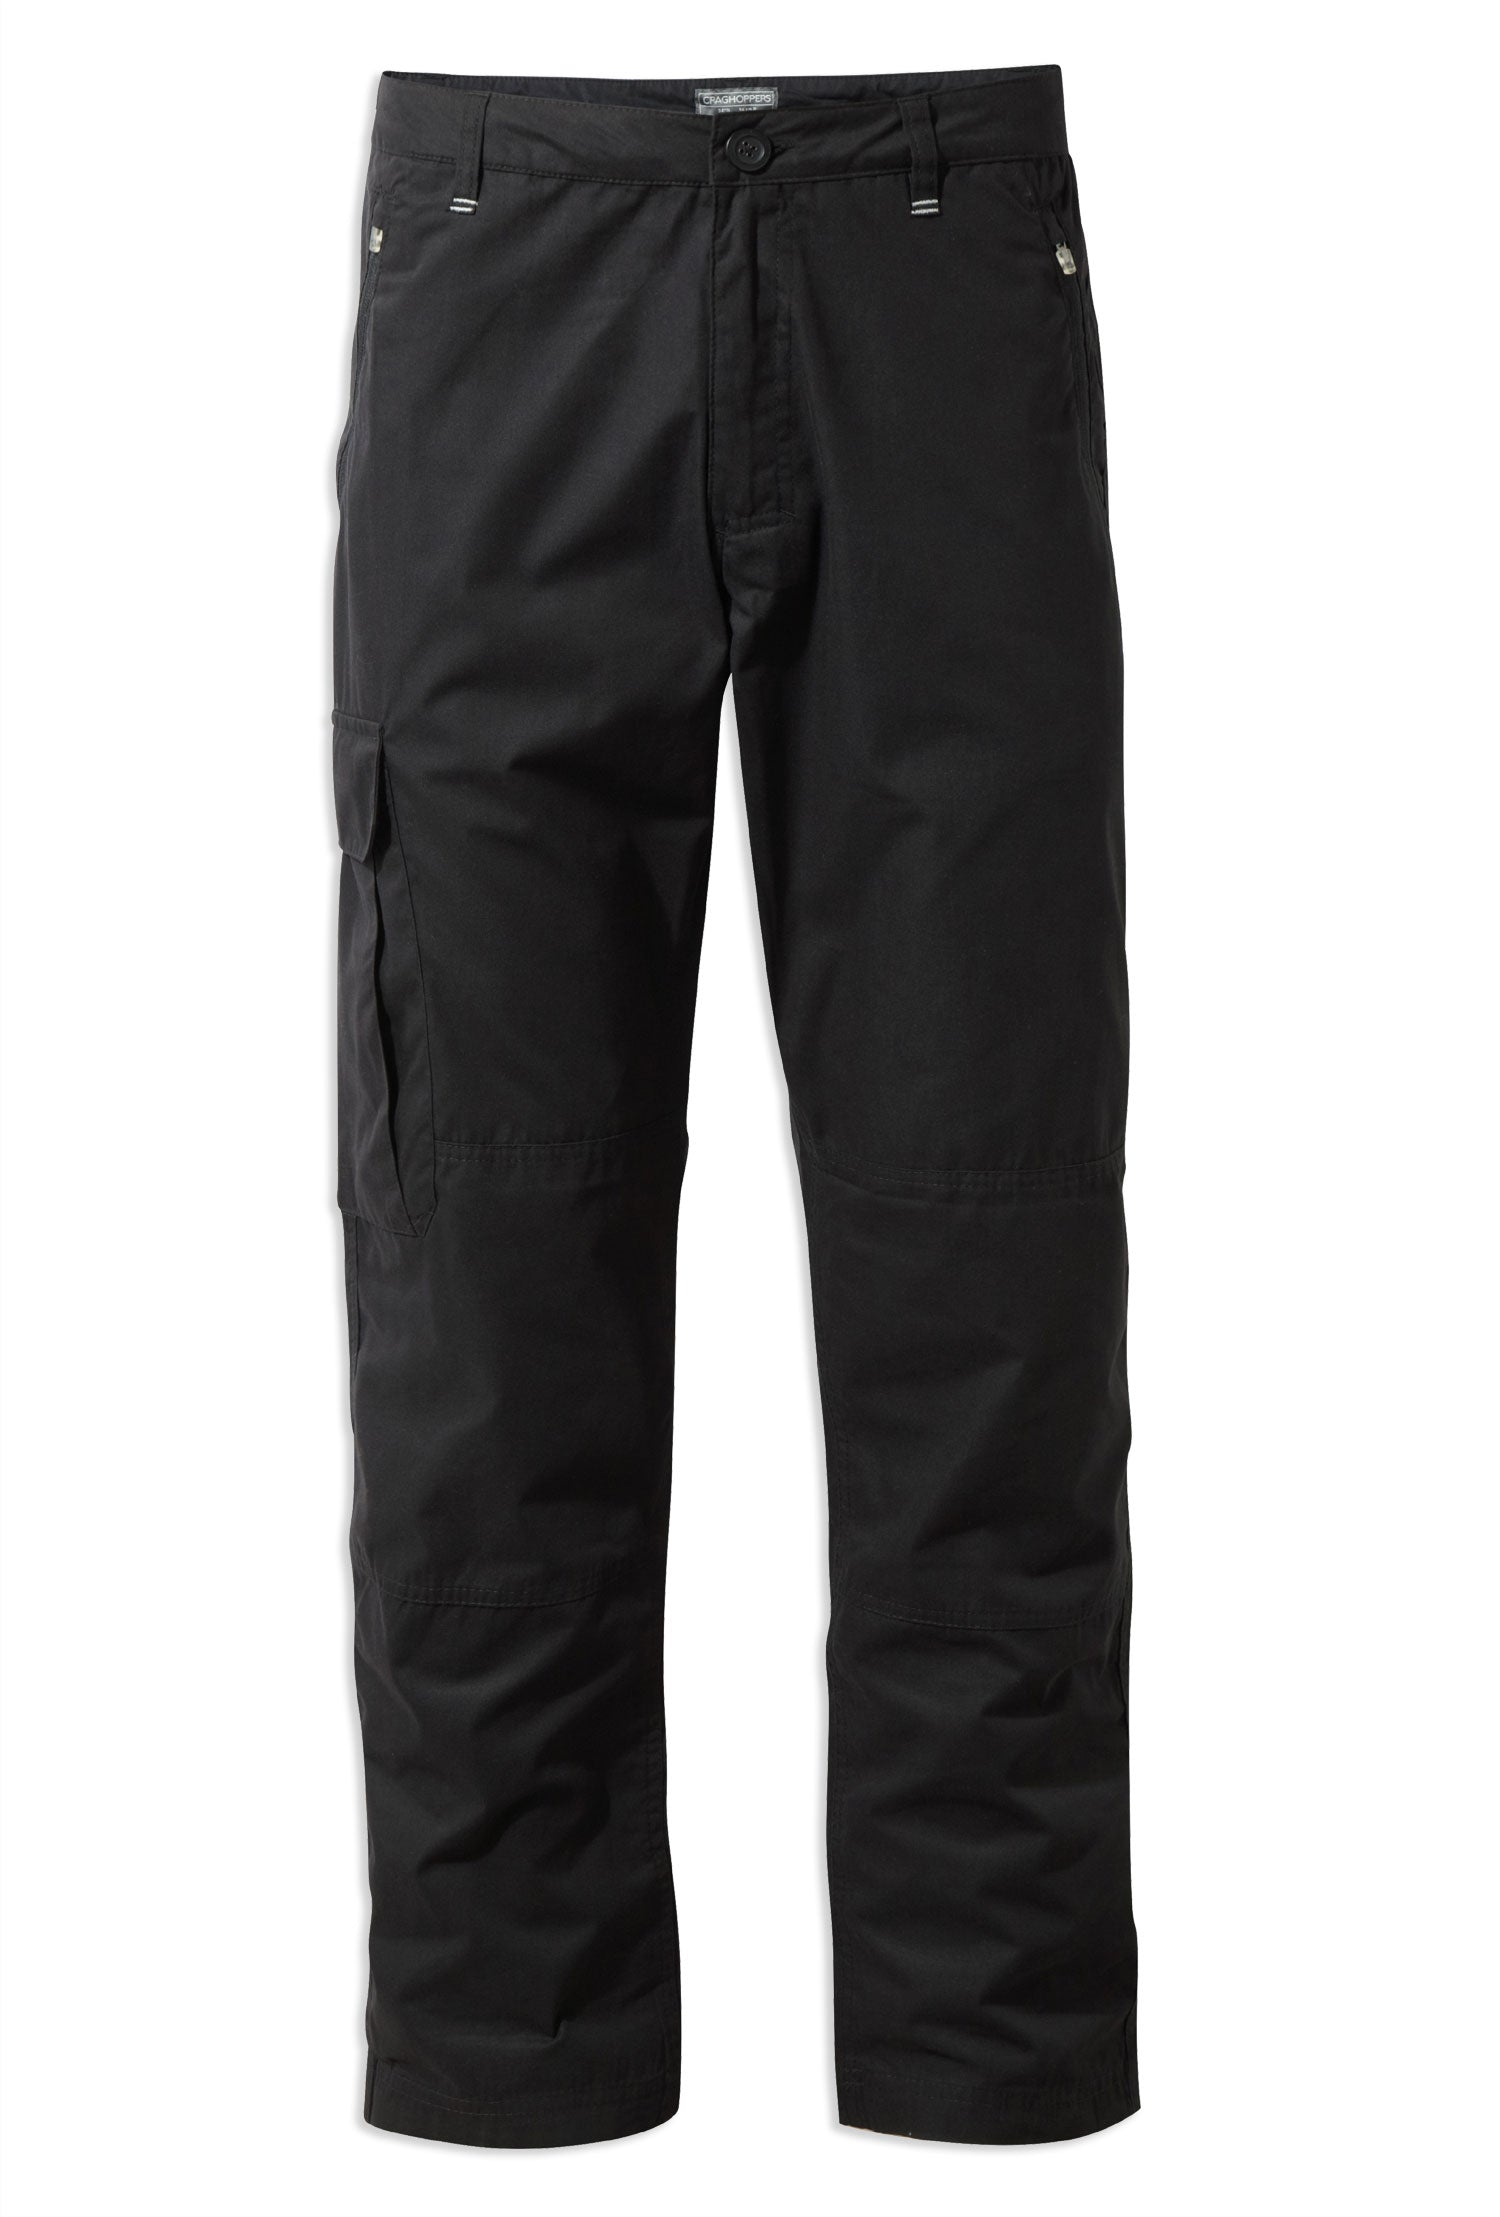 Craghoppers Traverse Trousers | Black